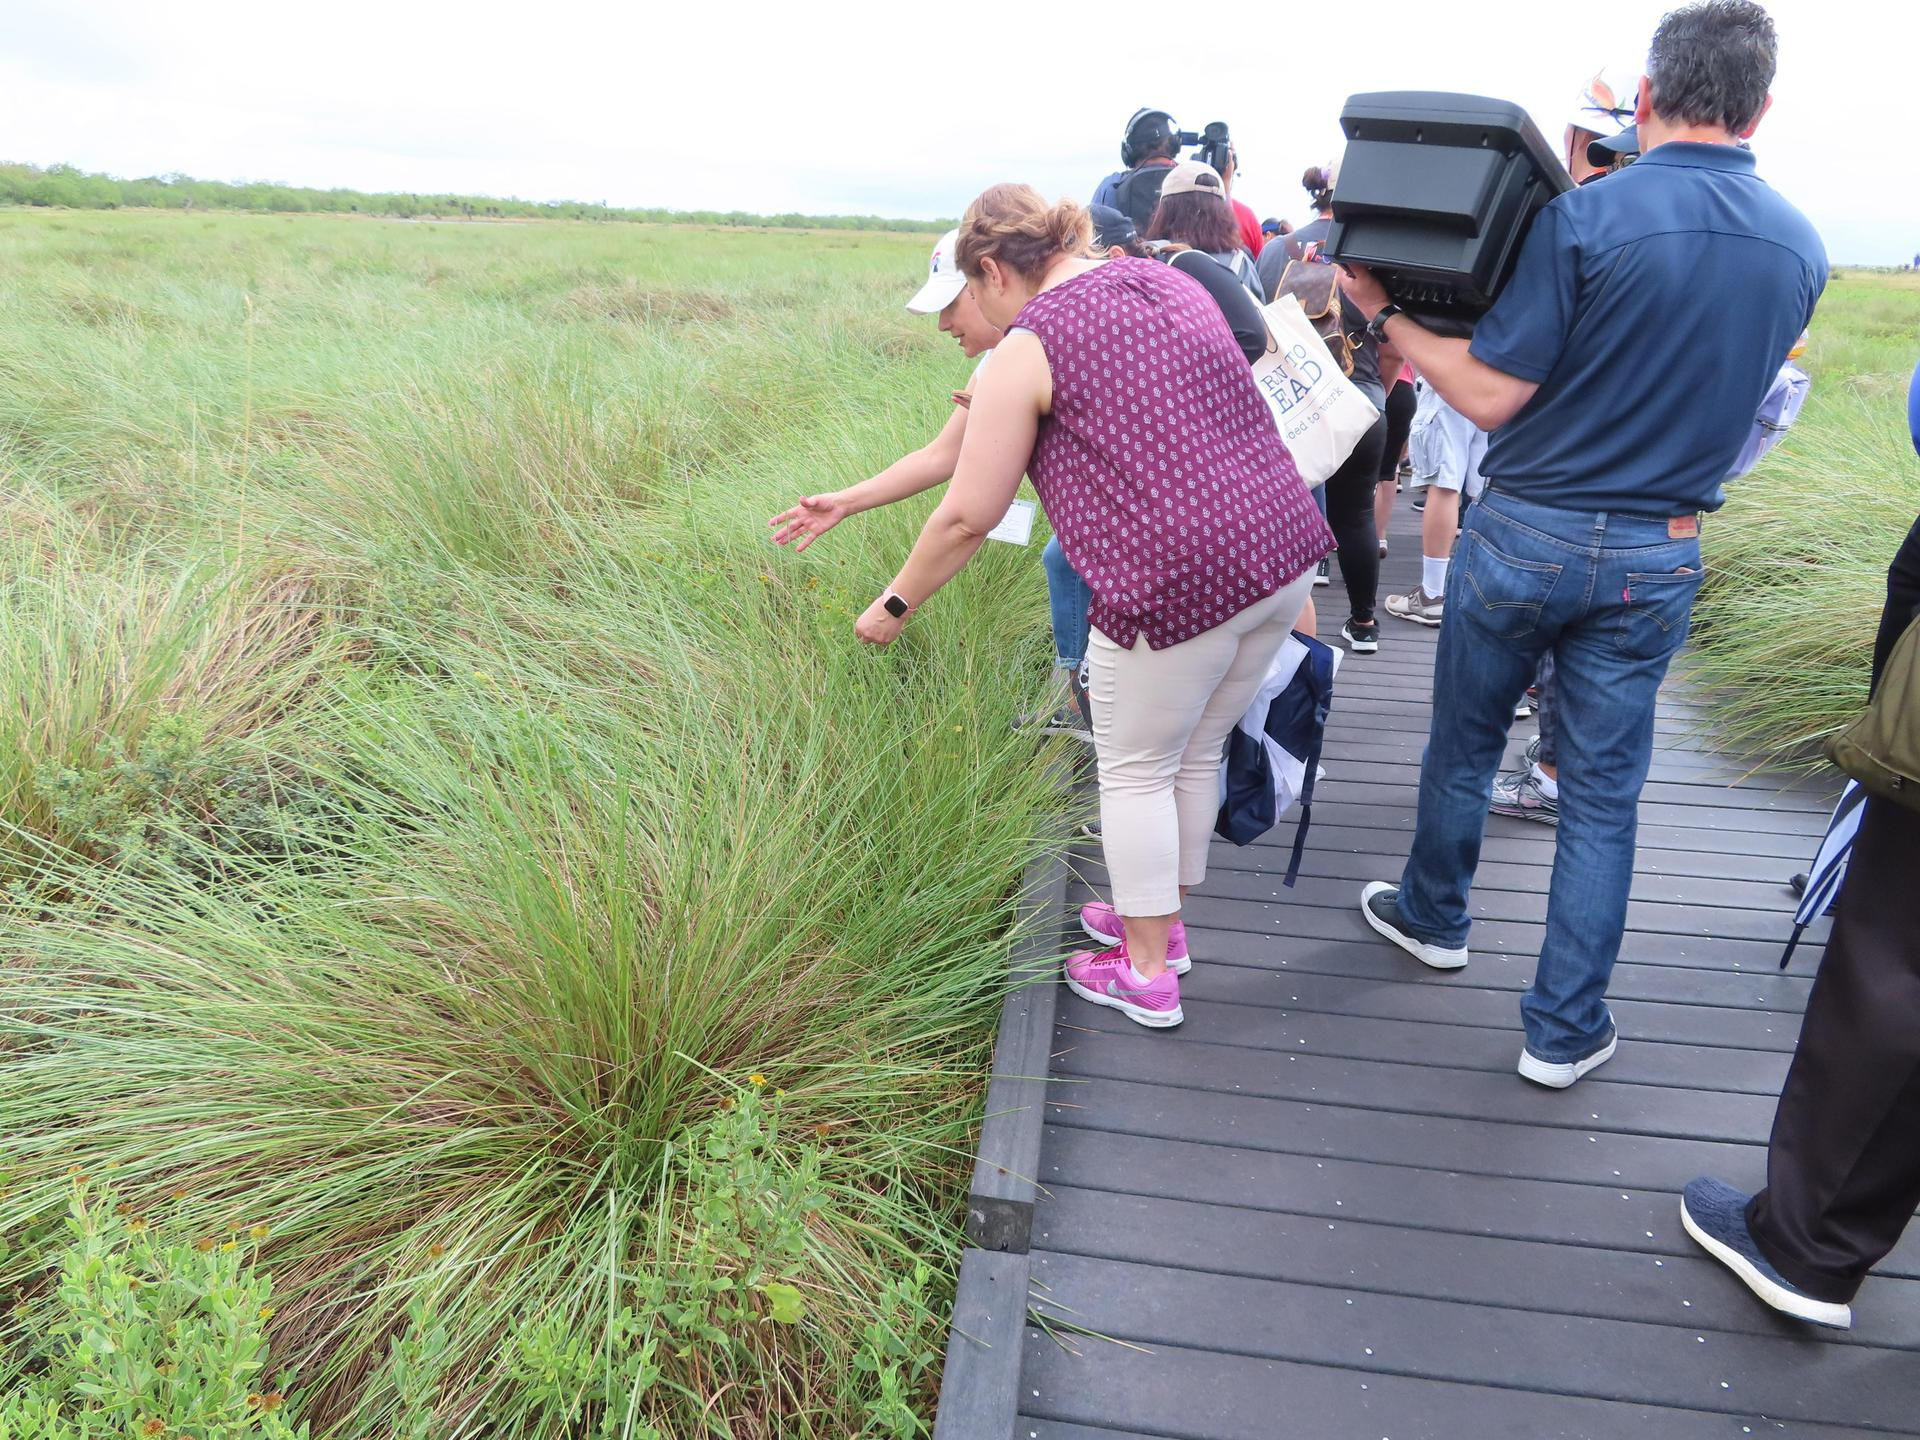 Teachers observing wild grass